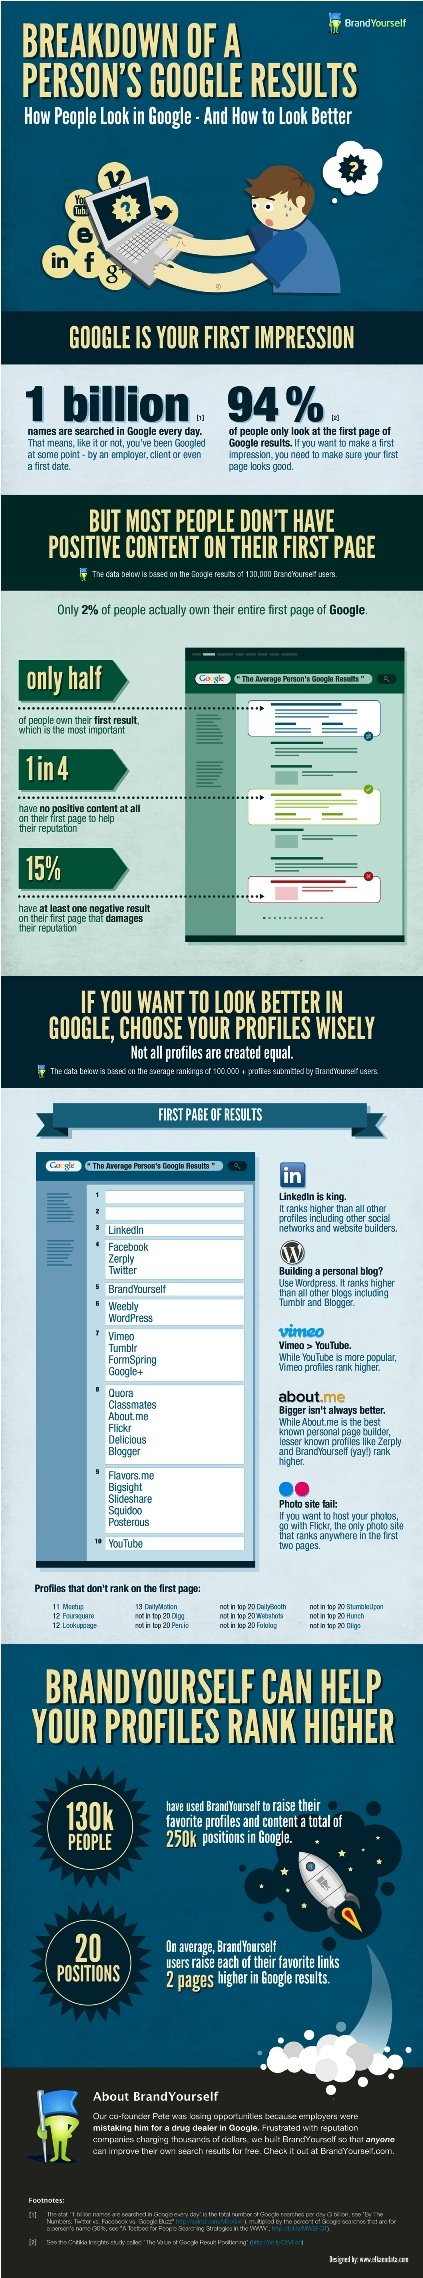 A break down of a person's Google results #infographic